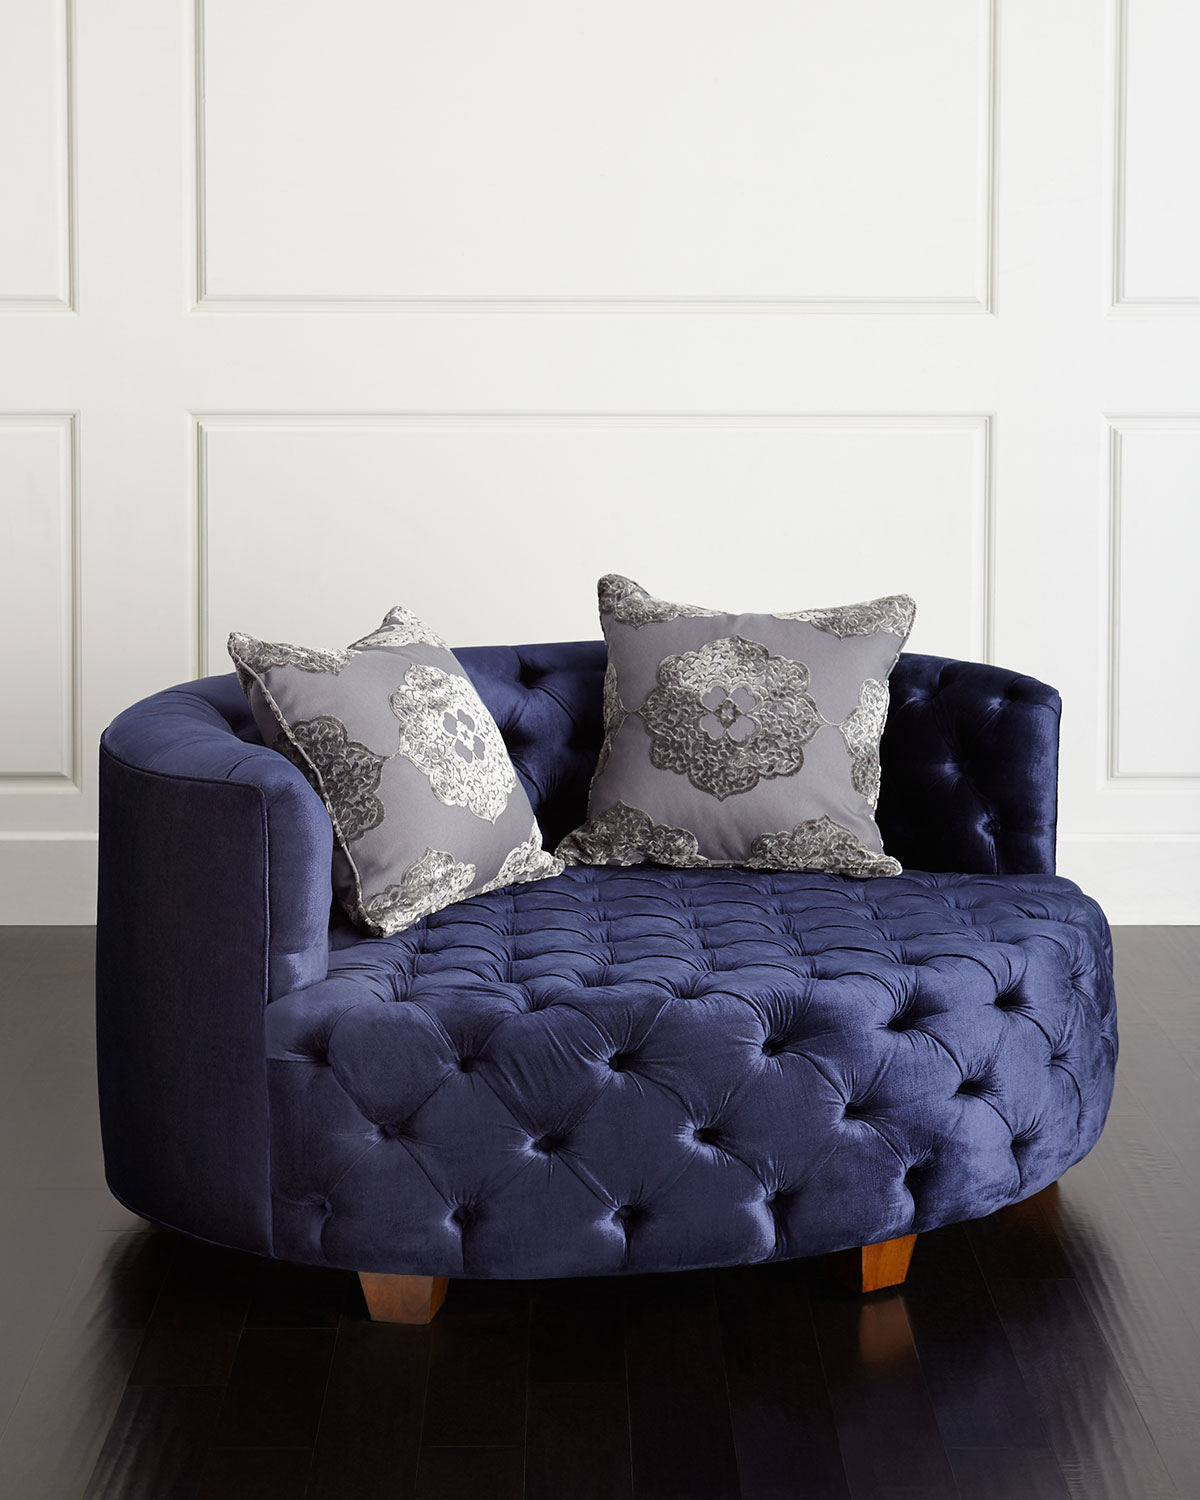 swivel cuddle chair york dining chairs tufted haute house rockwell neiman marcus houserockwell